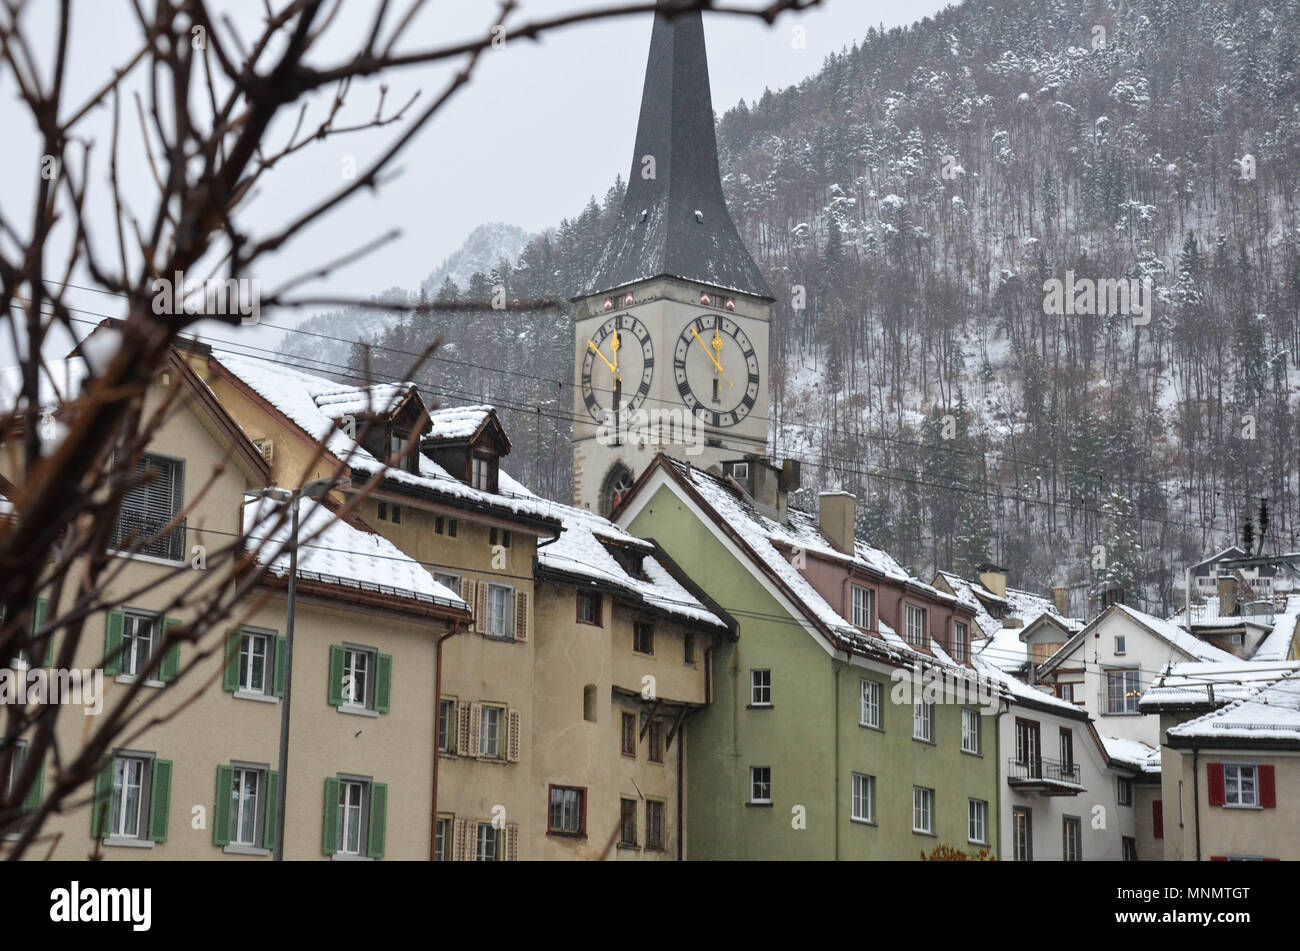 St. Martin's Church, Chur, Grisons canton, Switzerland, January 2018 - Stock Image